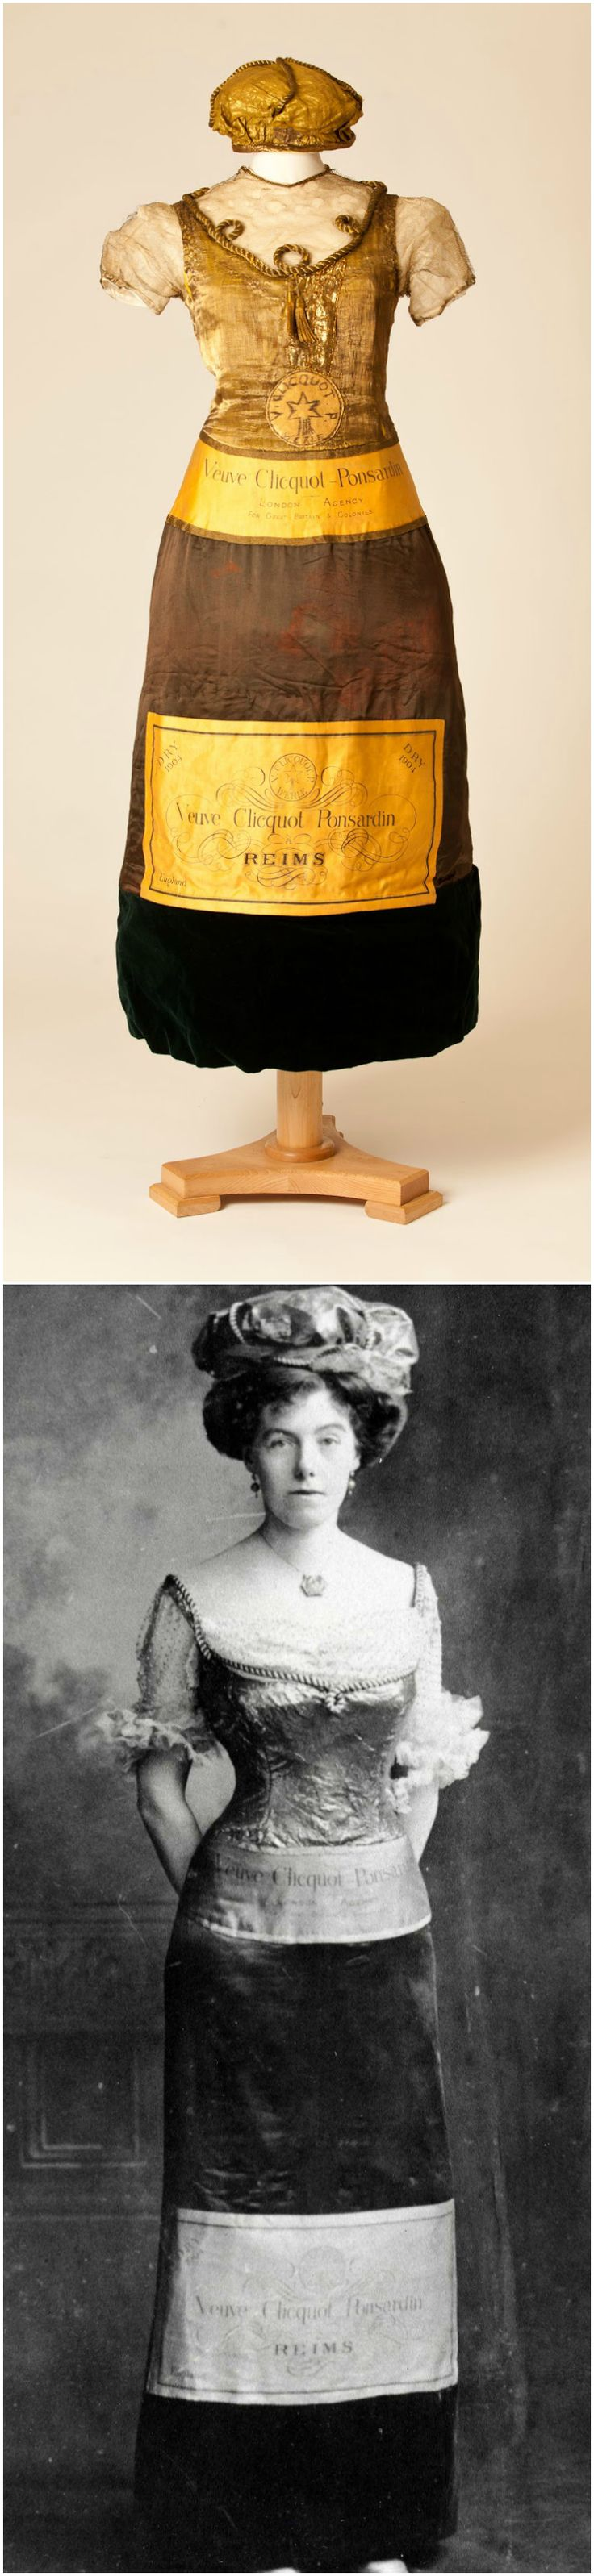 Champagne bottle dress worn by an unknown lady at a fancy dress party in 1902. Photos courtesy of Fashion Museum, Bath & North East Somerset Council, via The Huffington Post (Top) & @Fashion_Museum on Twitter (Bottom).